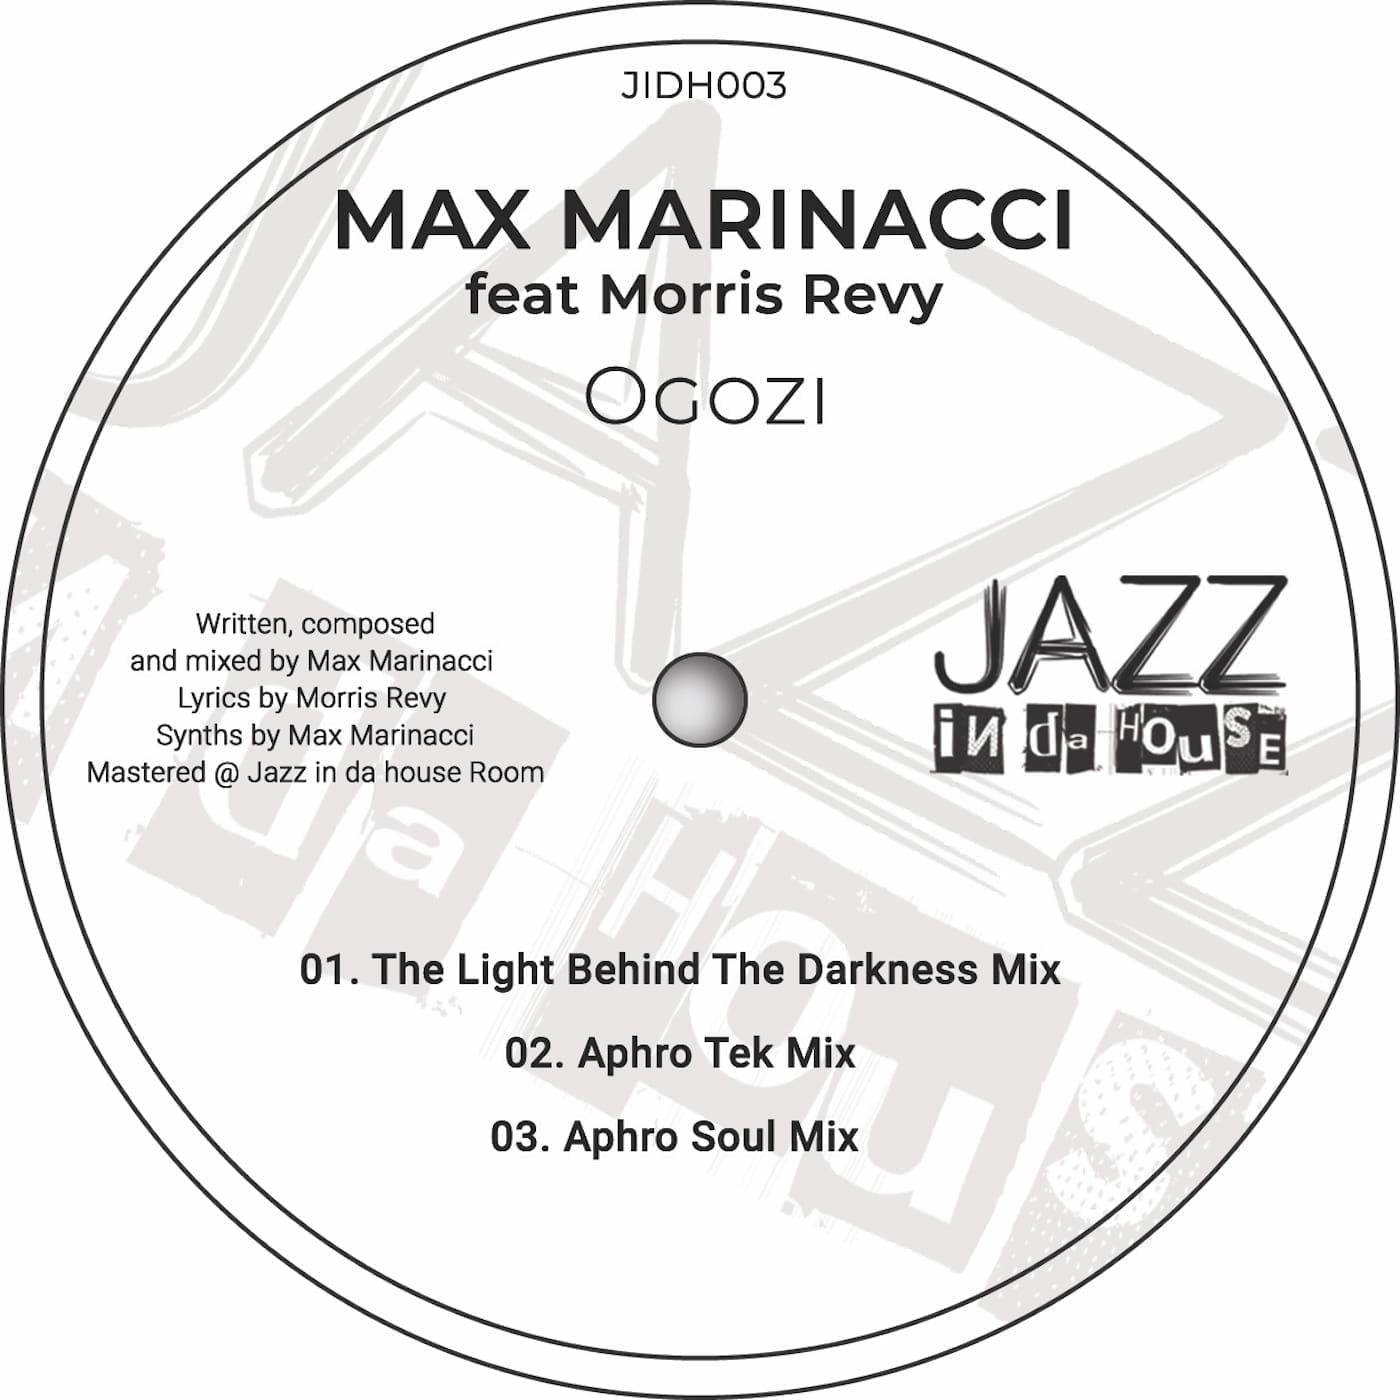 Max Marinacci releases new single 'Ogozi' featuring Morris Revy on Jazz In Da House